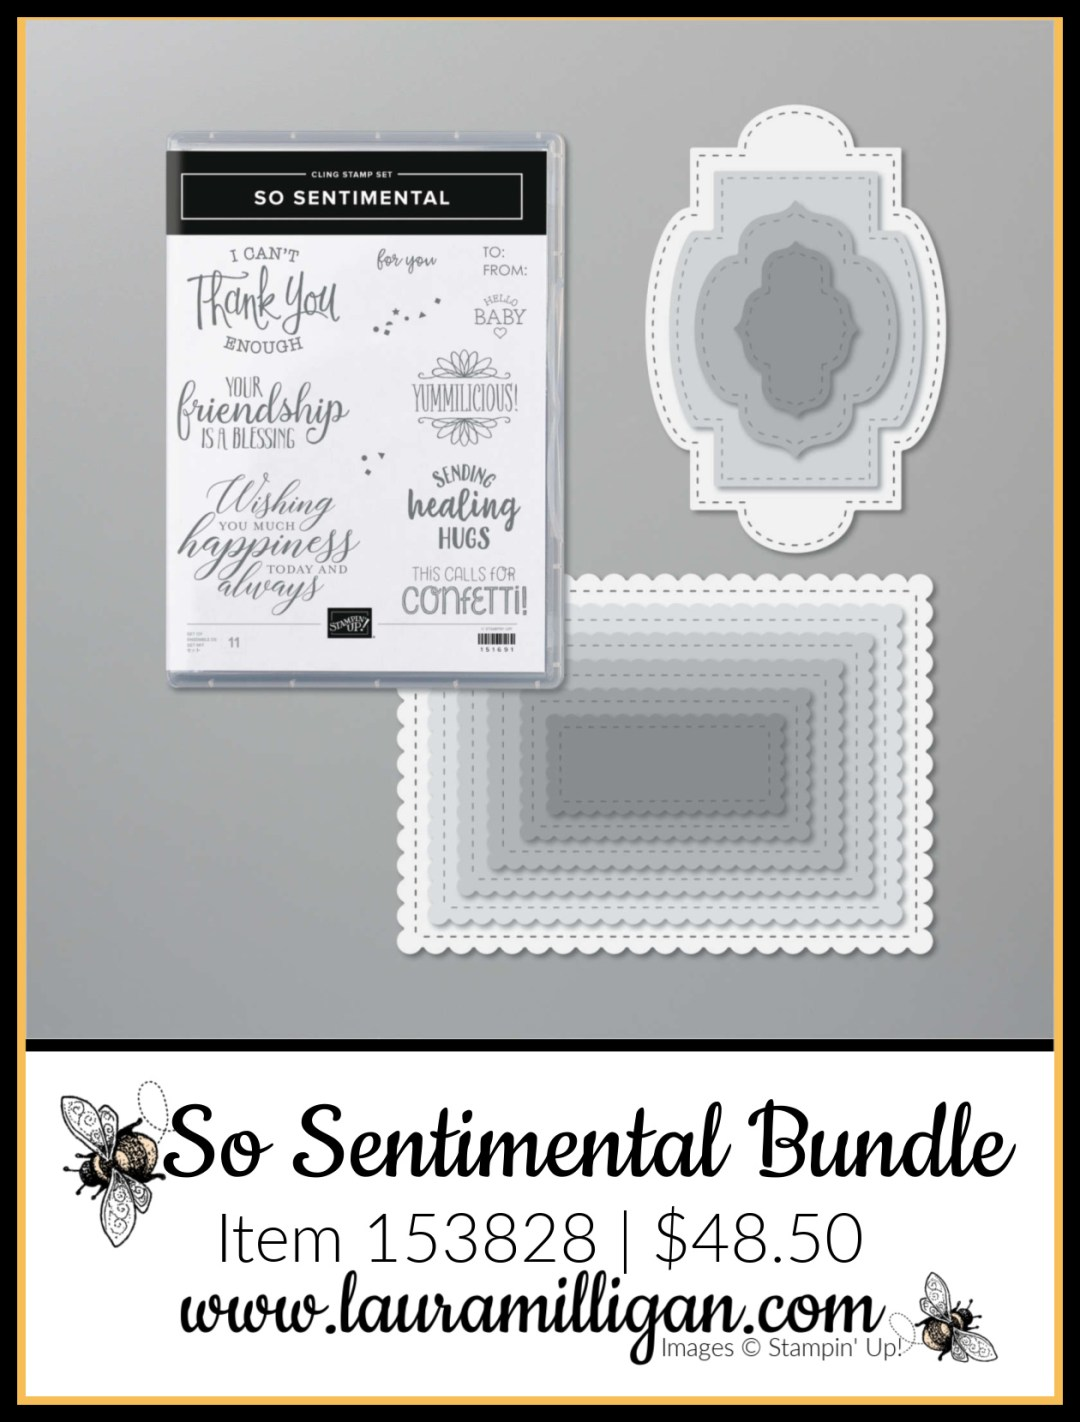 So Sentimental Bundle from Stampin' Up! Item 153828